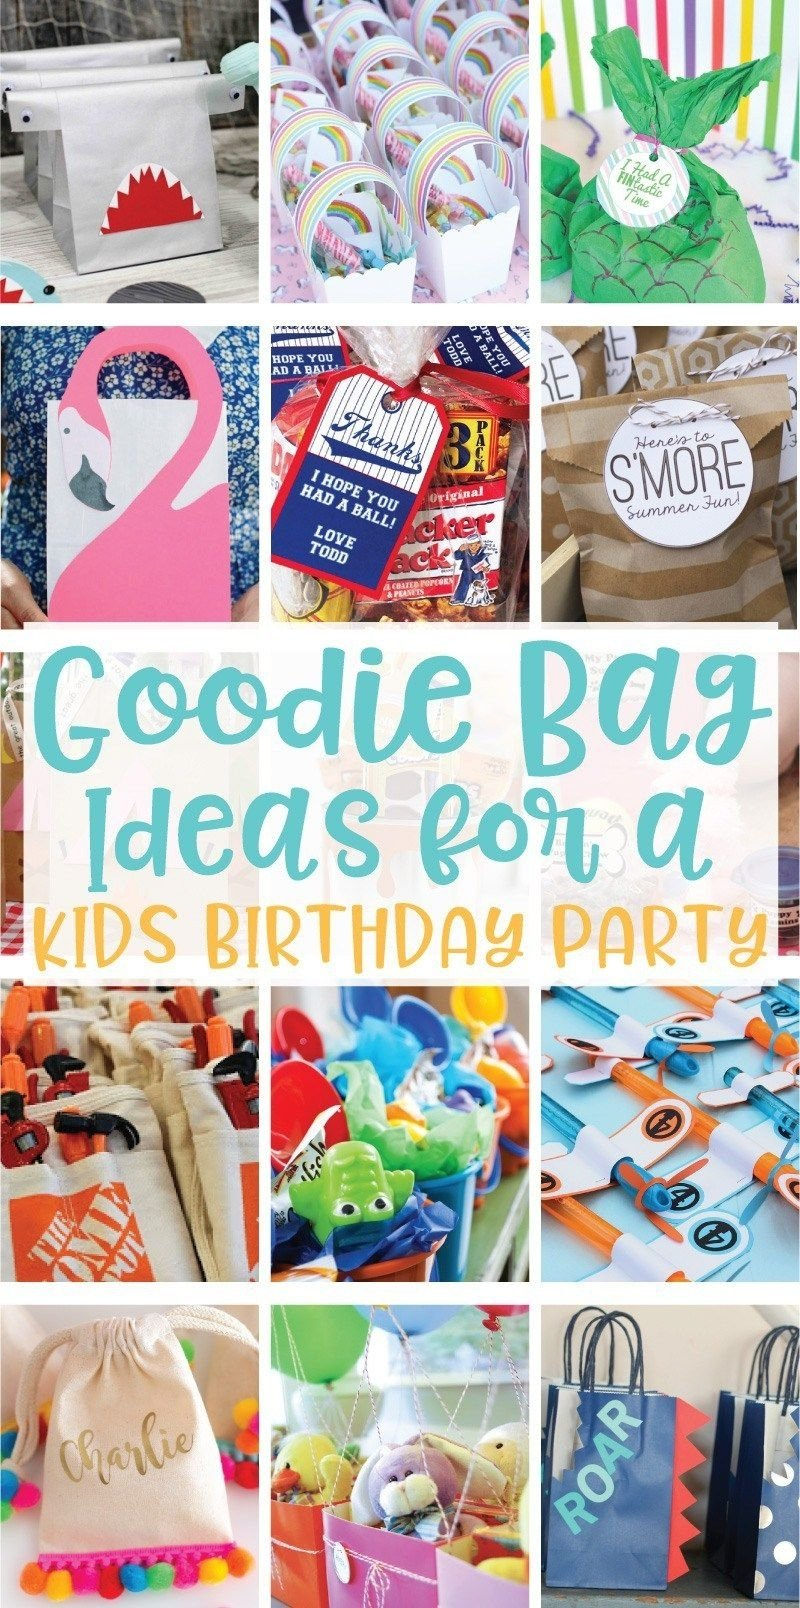 10 Spectacular Goodie Bag Ideas For Kids Birthday Parties 20 creative goodie bag ideas for kids birthday parties on goodie 1 2020